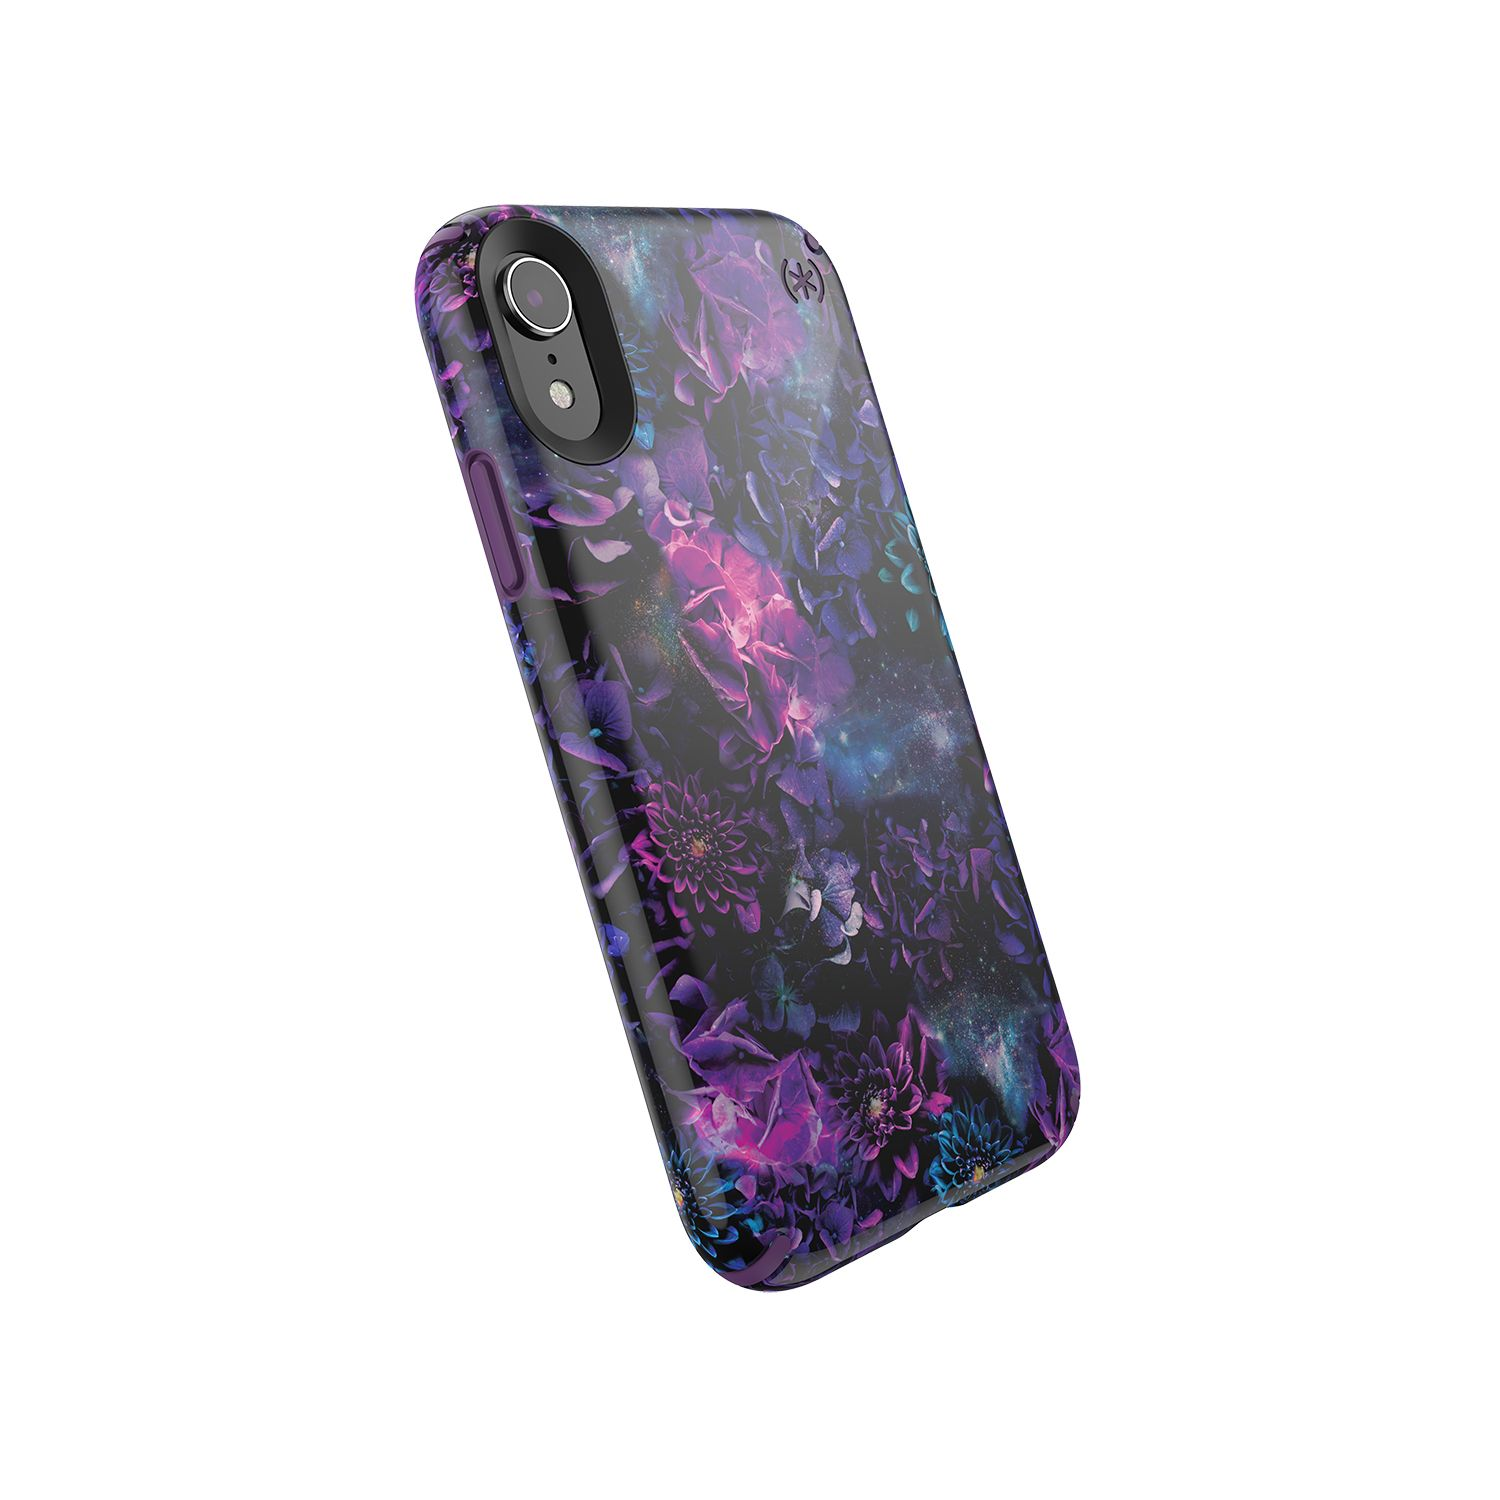 Presidio inked iphone xr cases cool iphone cases